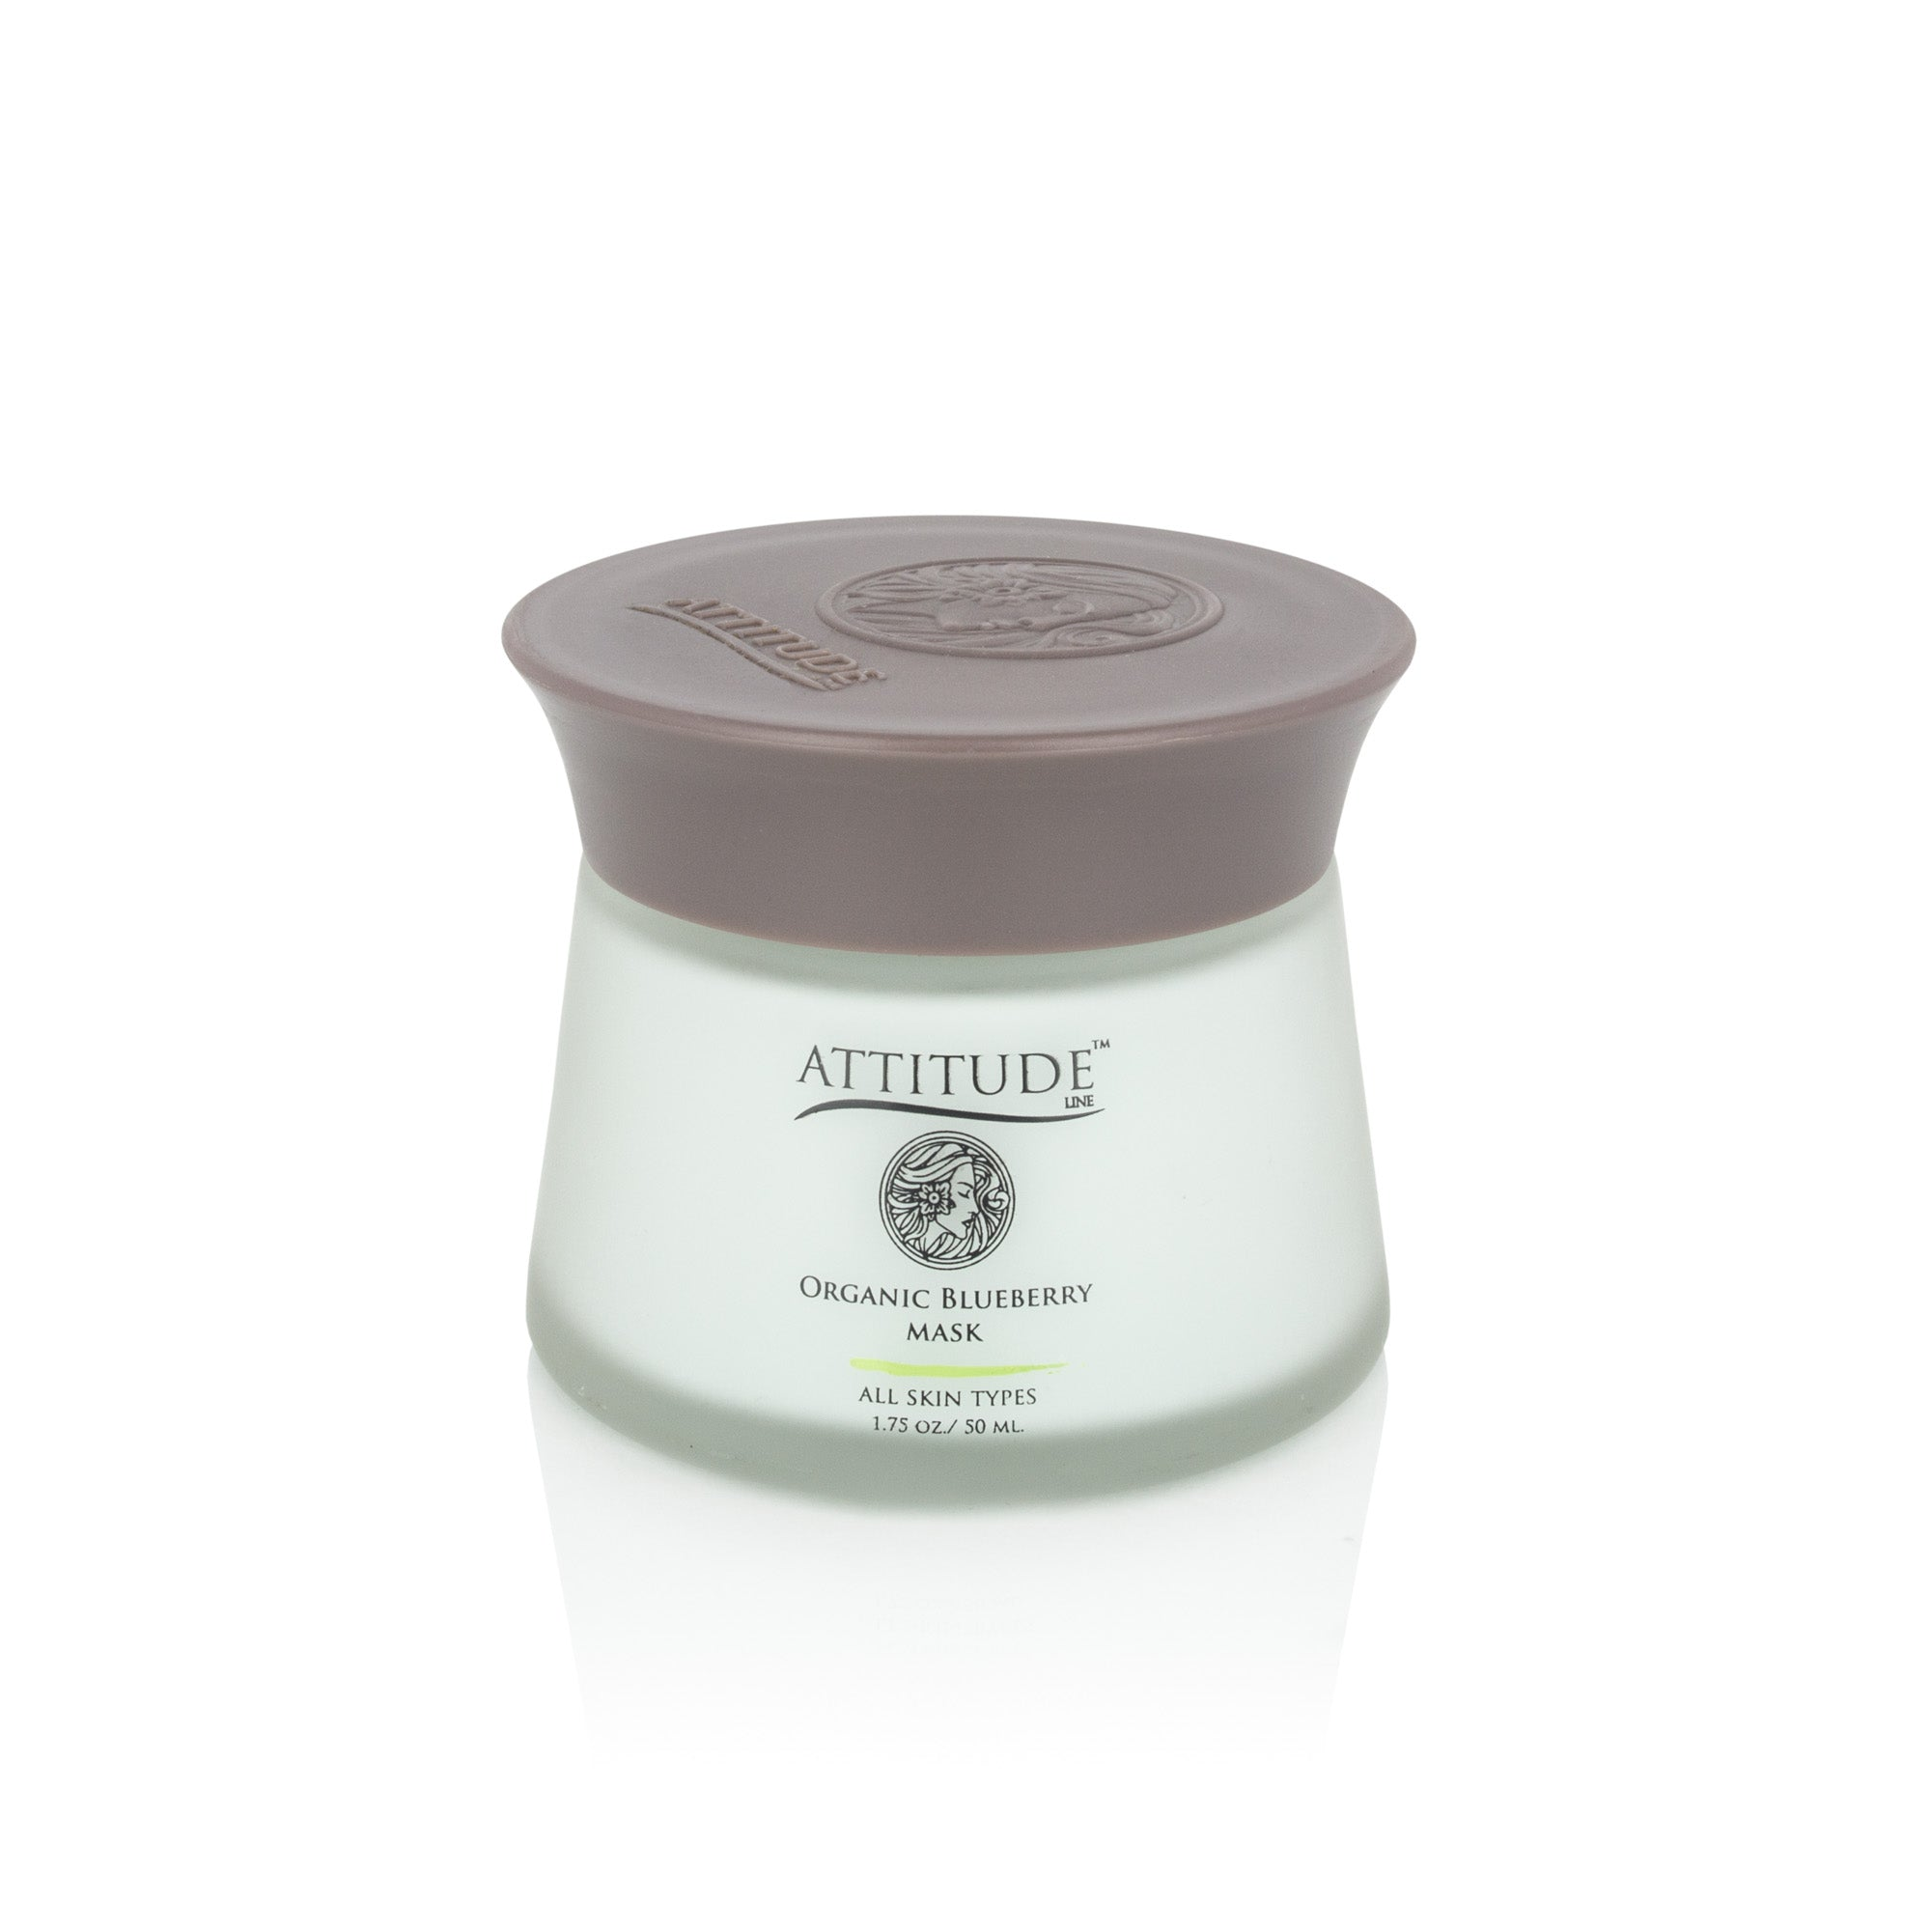 ATTITUDE LINE - Organic Blueberry Wrinkle-Fighting Detox Mask